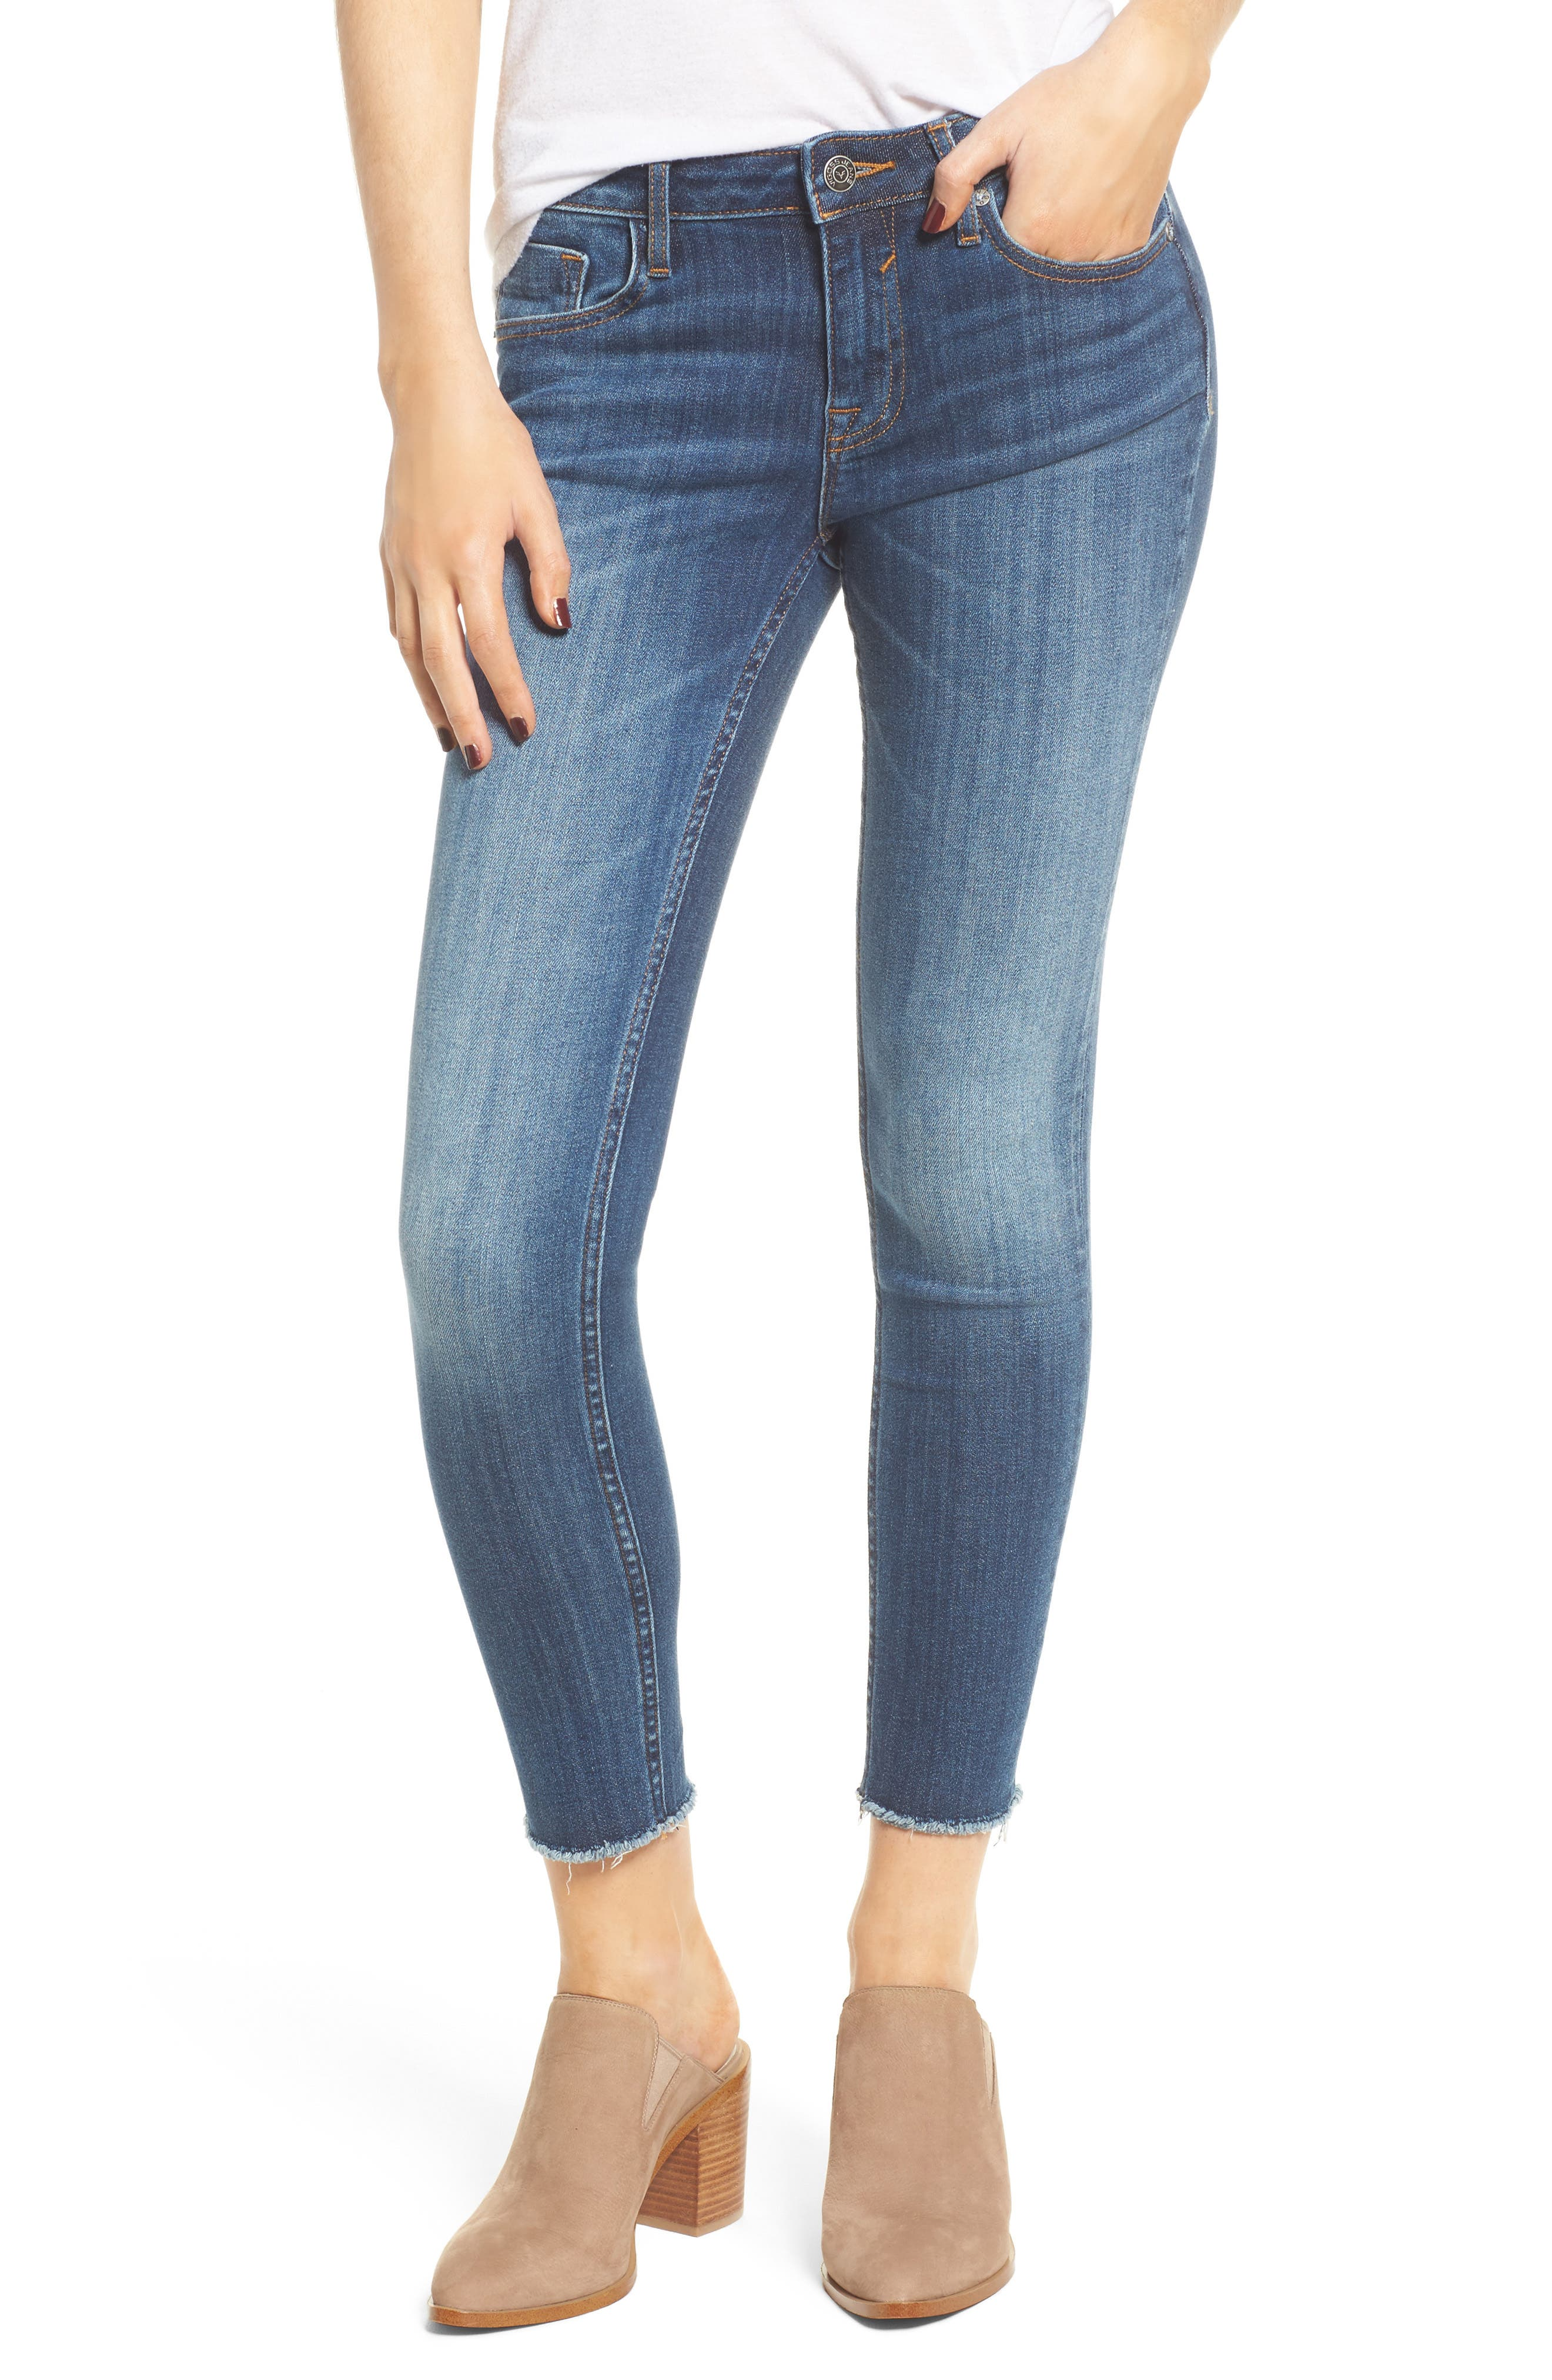 Jagger Mid-Rise Skinny Jeans,                         Main,                         color, Med Wash